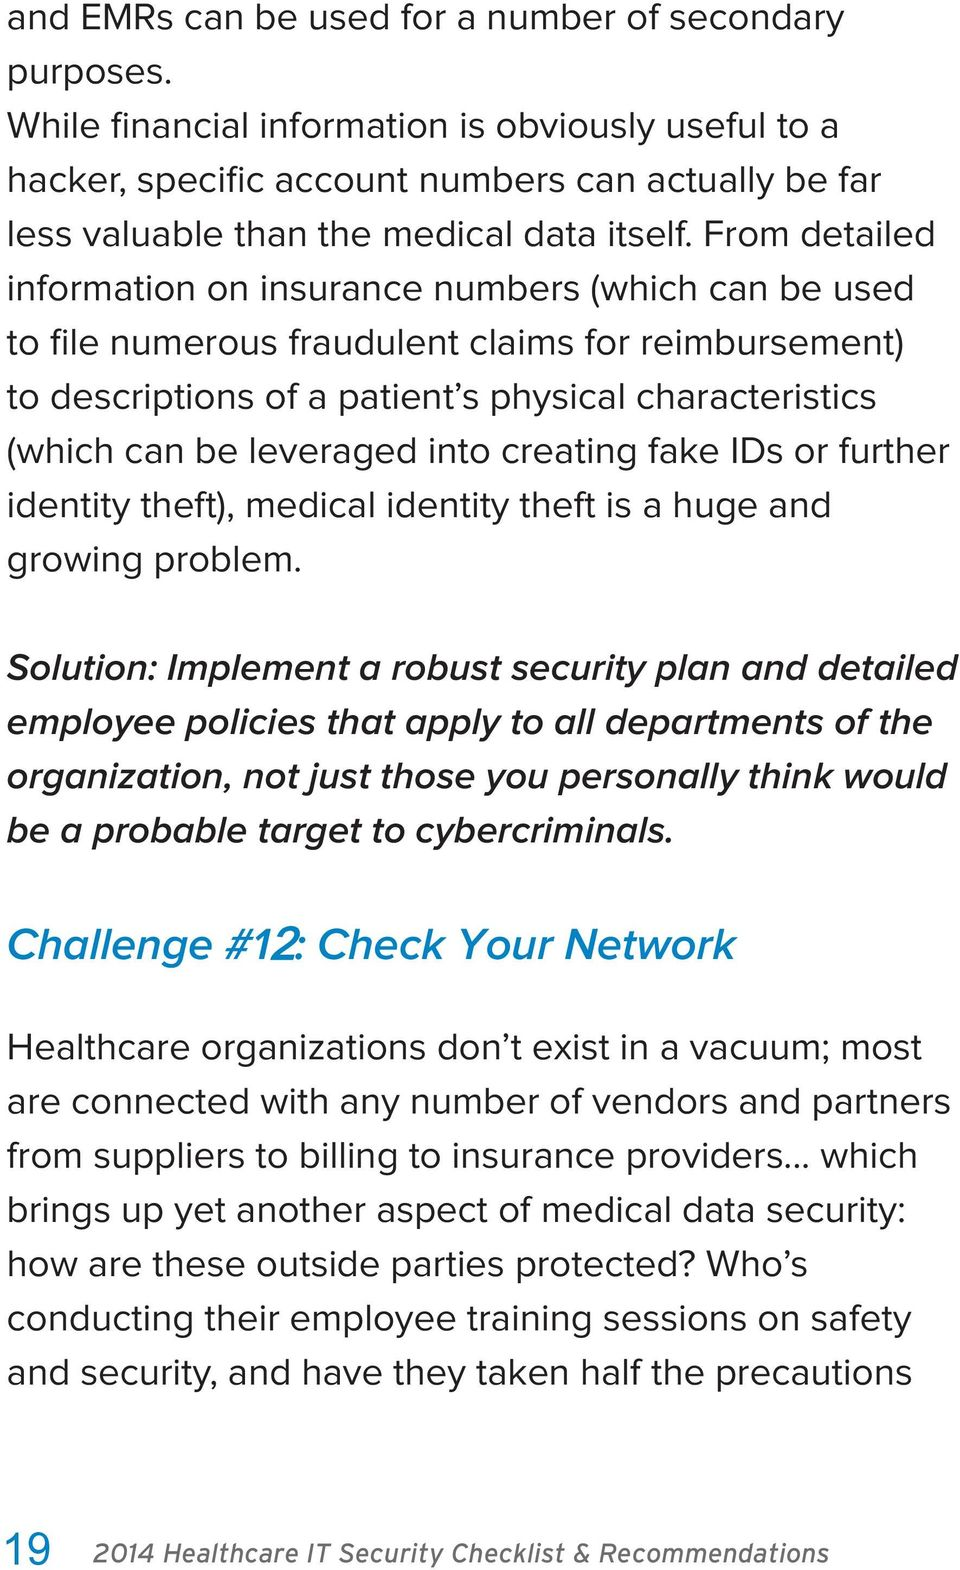 From detailed information on insurance numbers (which can be used to file numerous fraudulent claims for reimbursement) to descriptions of a patient s physical characteristics (which can be leveraged